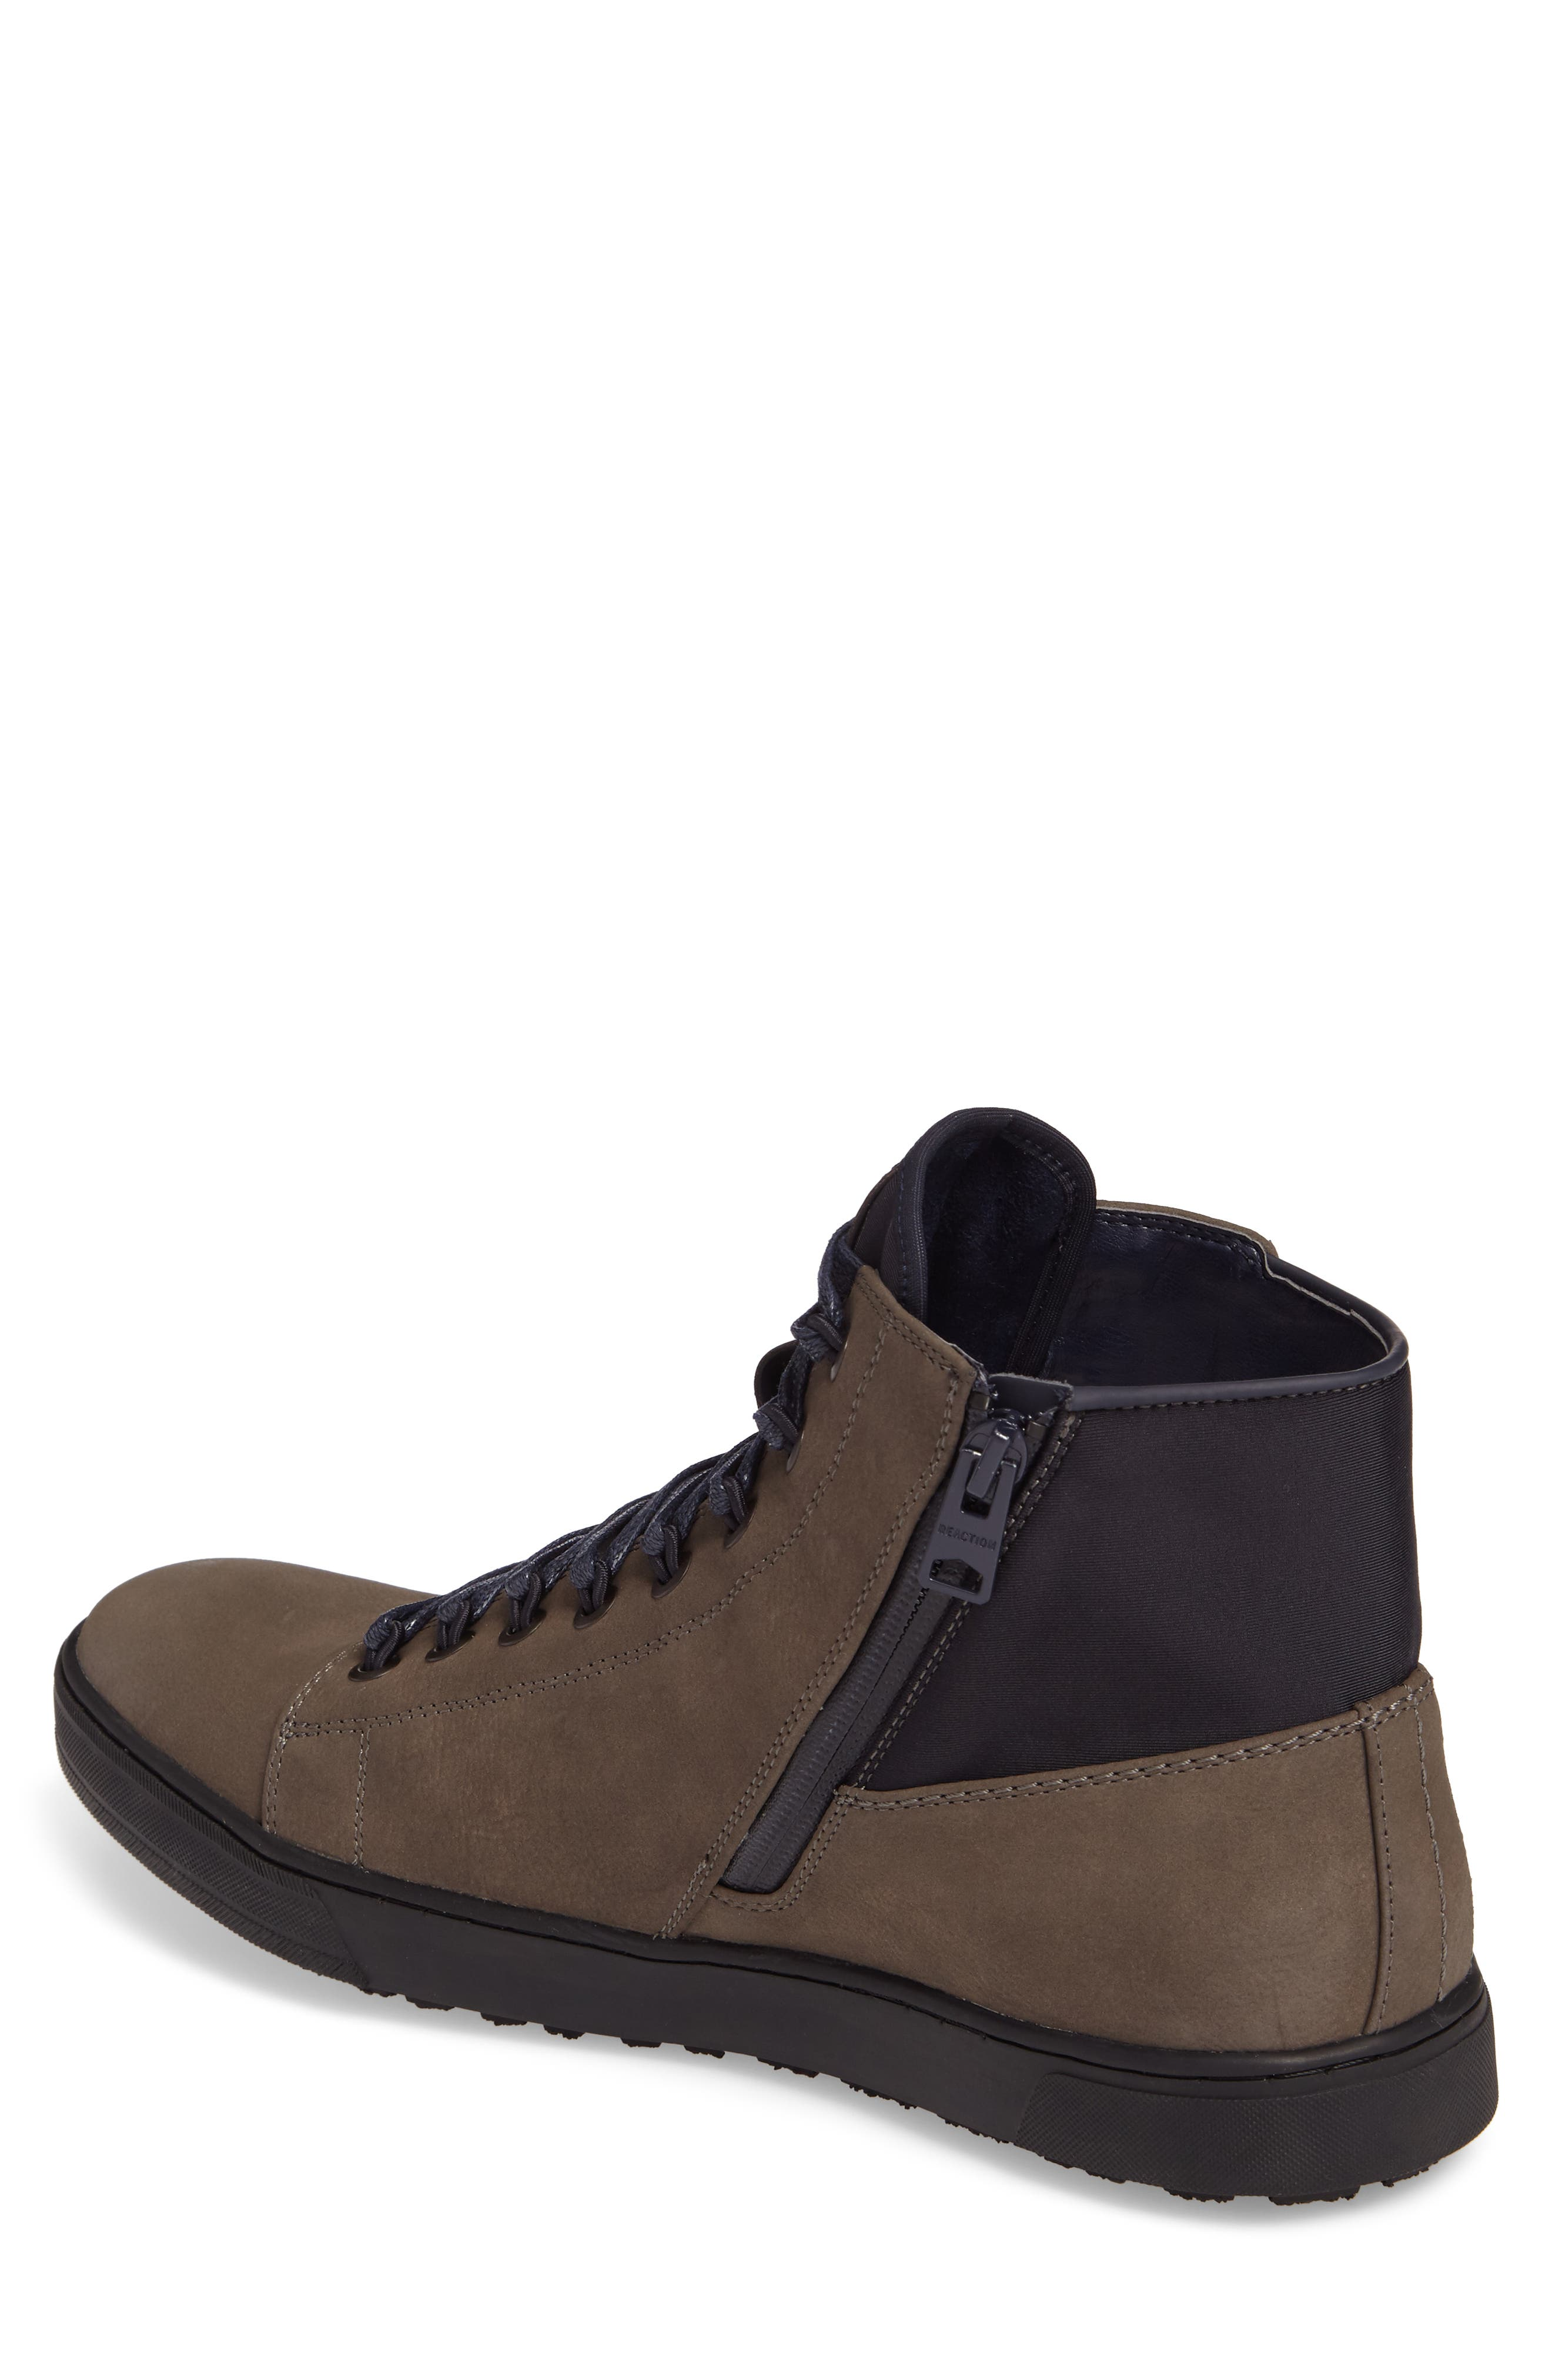 Kenneth Cole Reaction High-Top Sneaker,                             Alternate thumbnail 4, color,